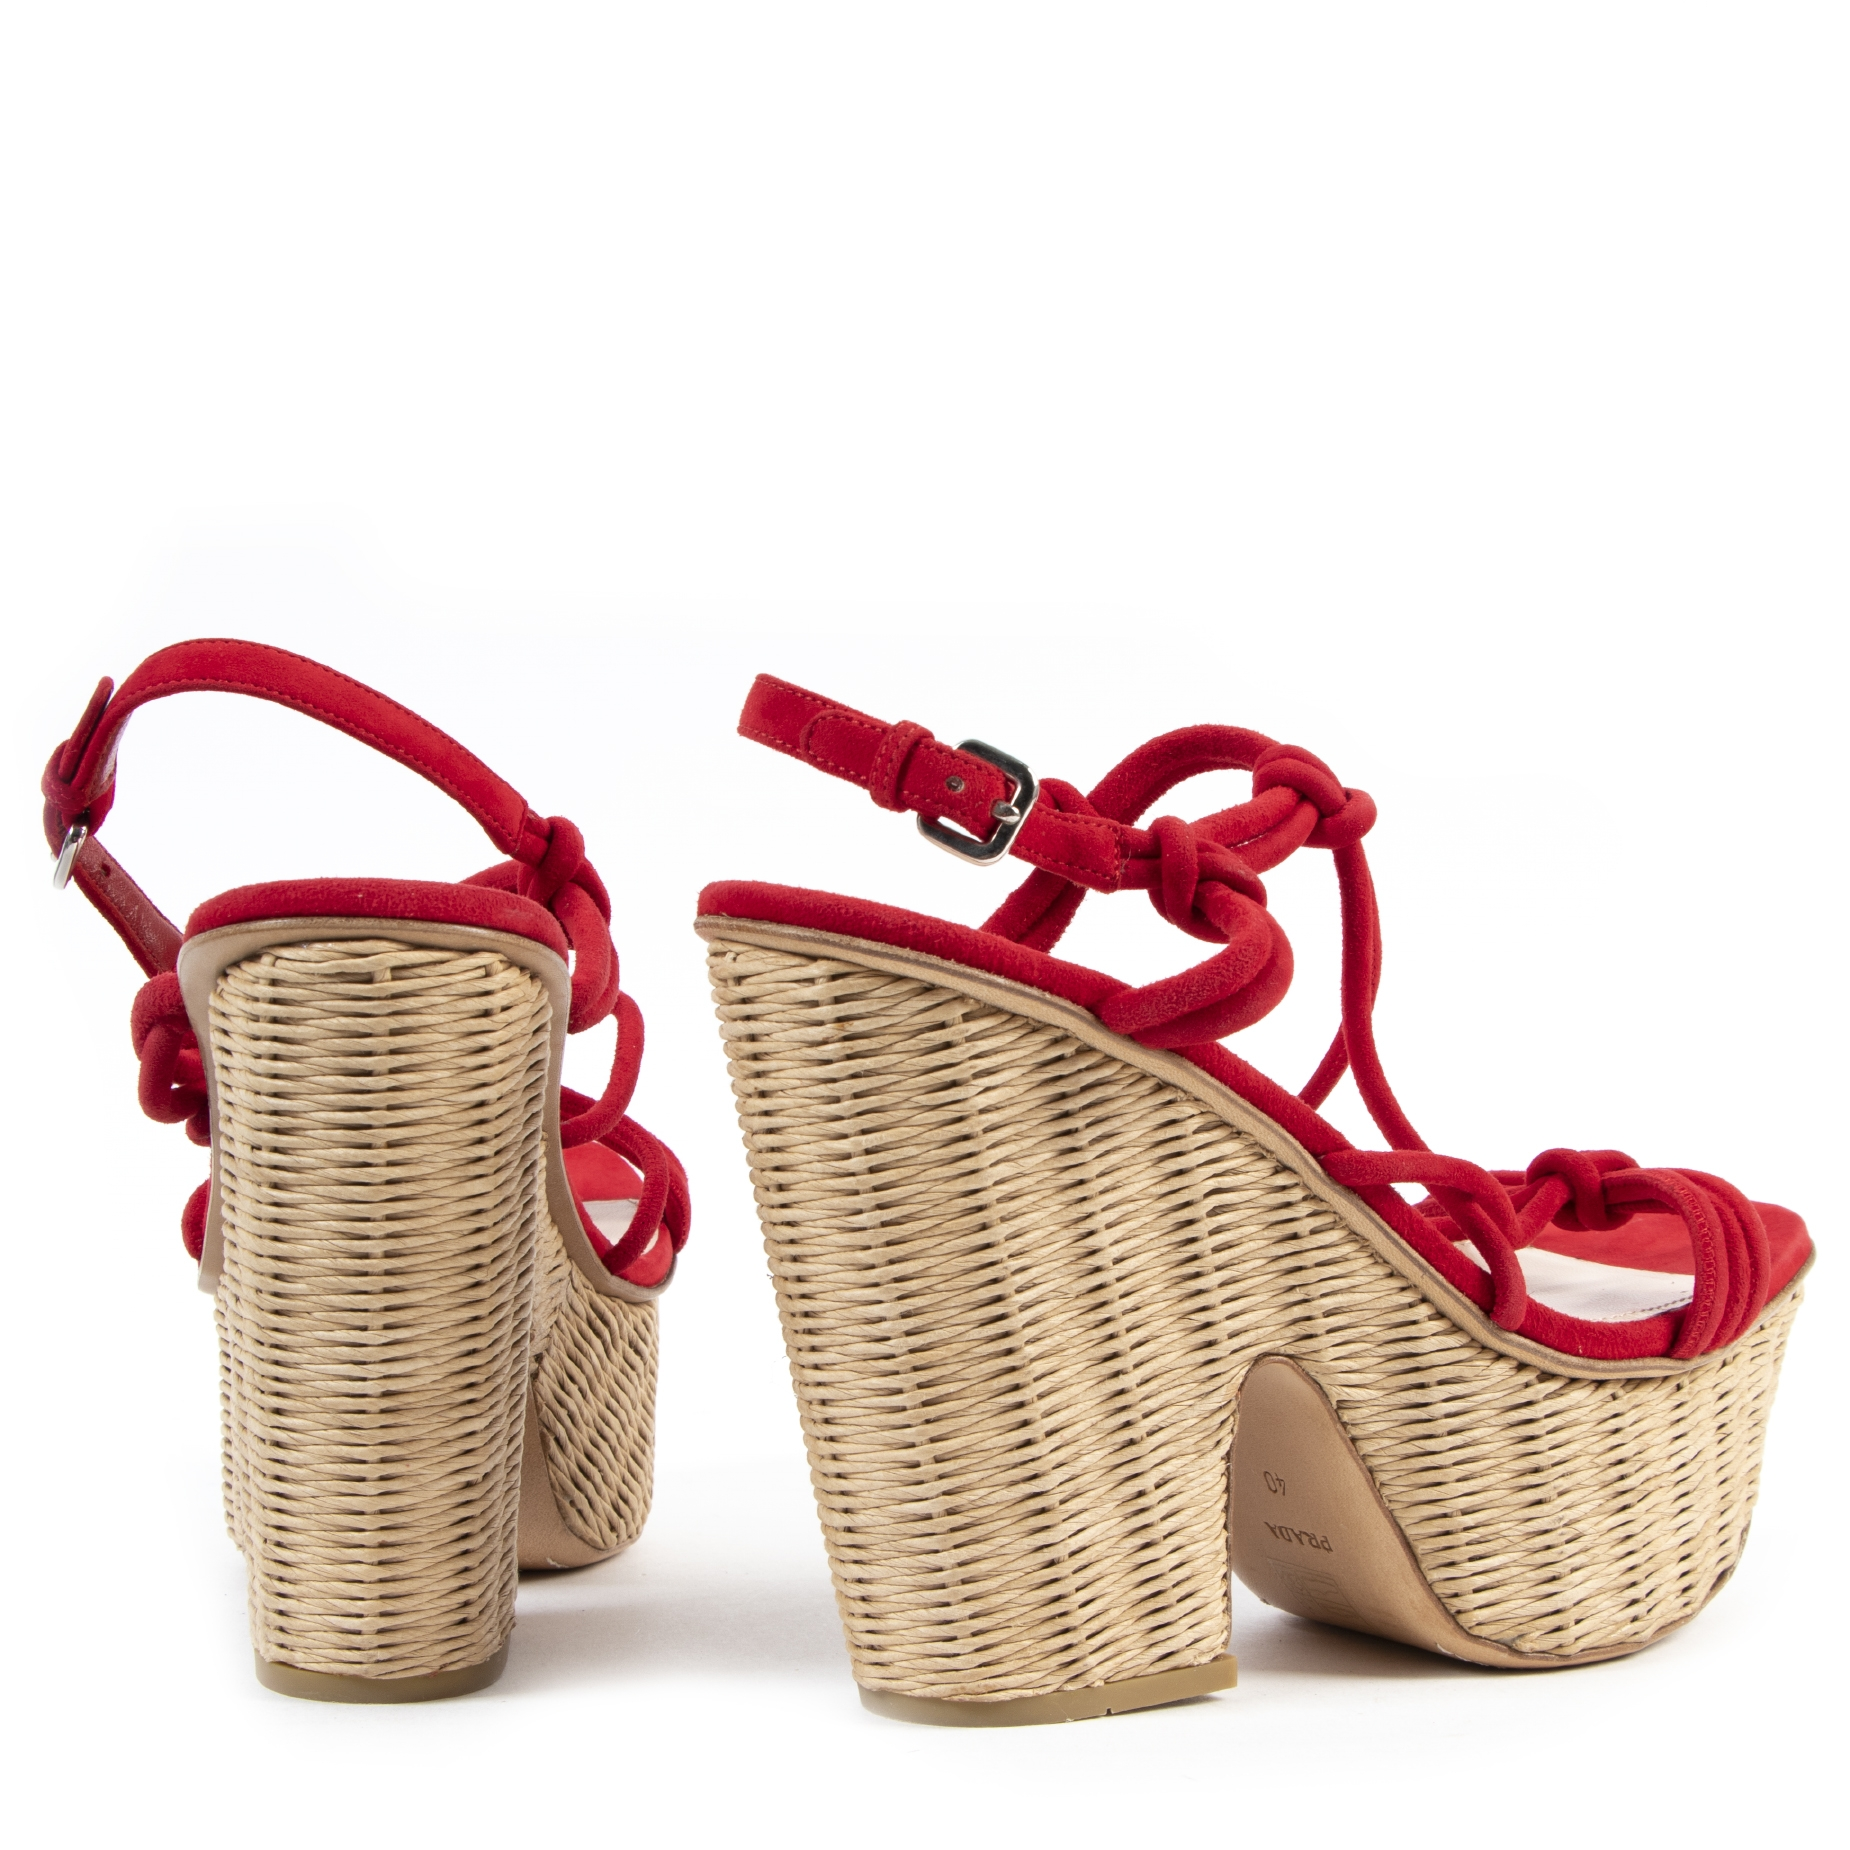 Prada Red Suede Wicker Platform Sandals - size 40